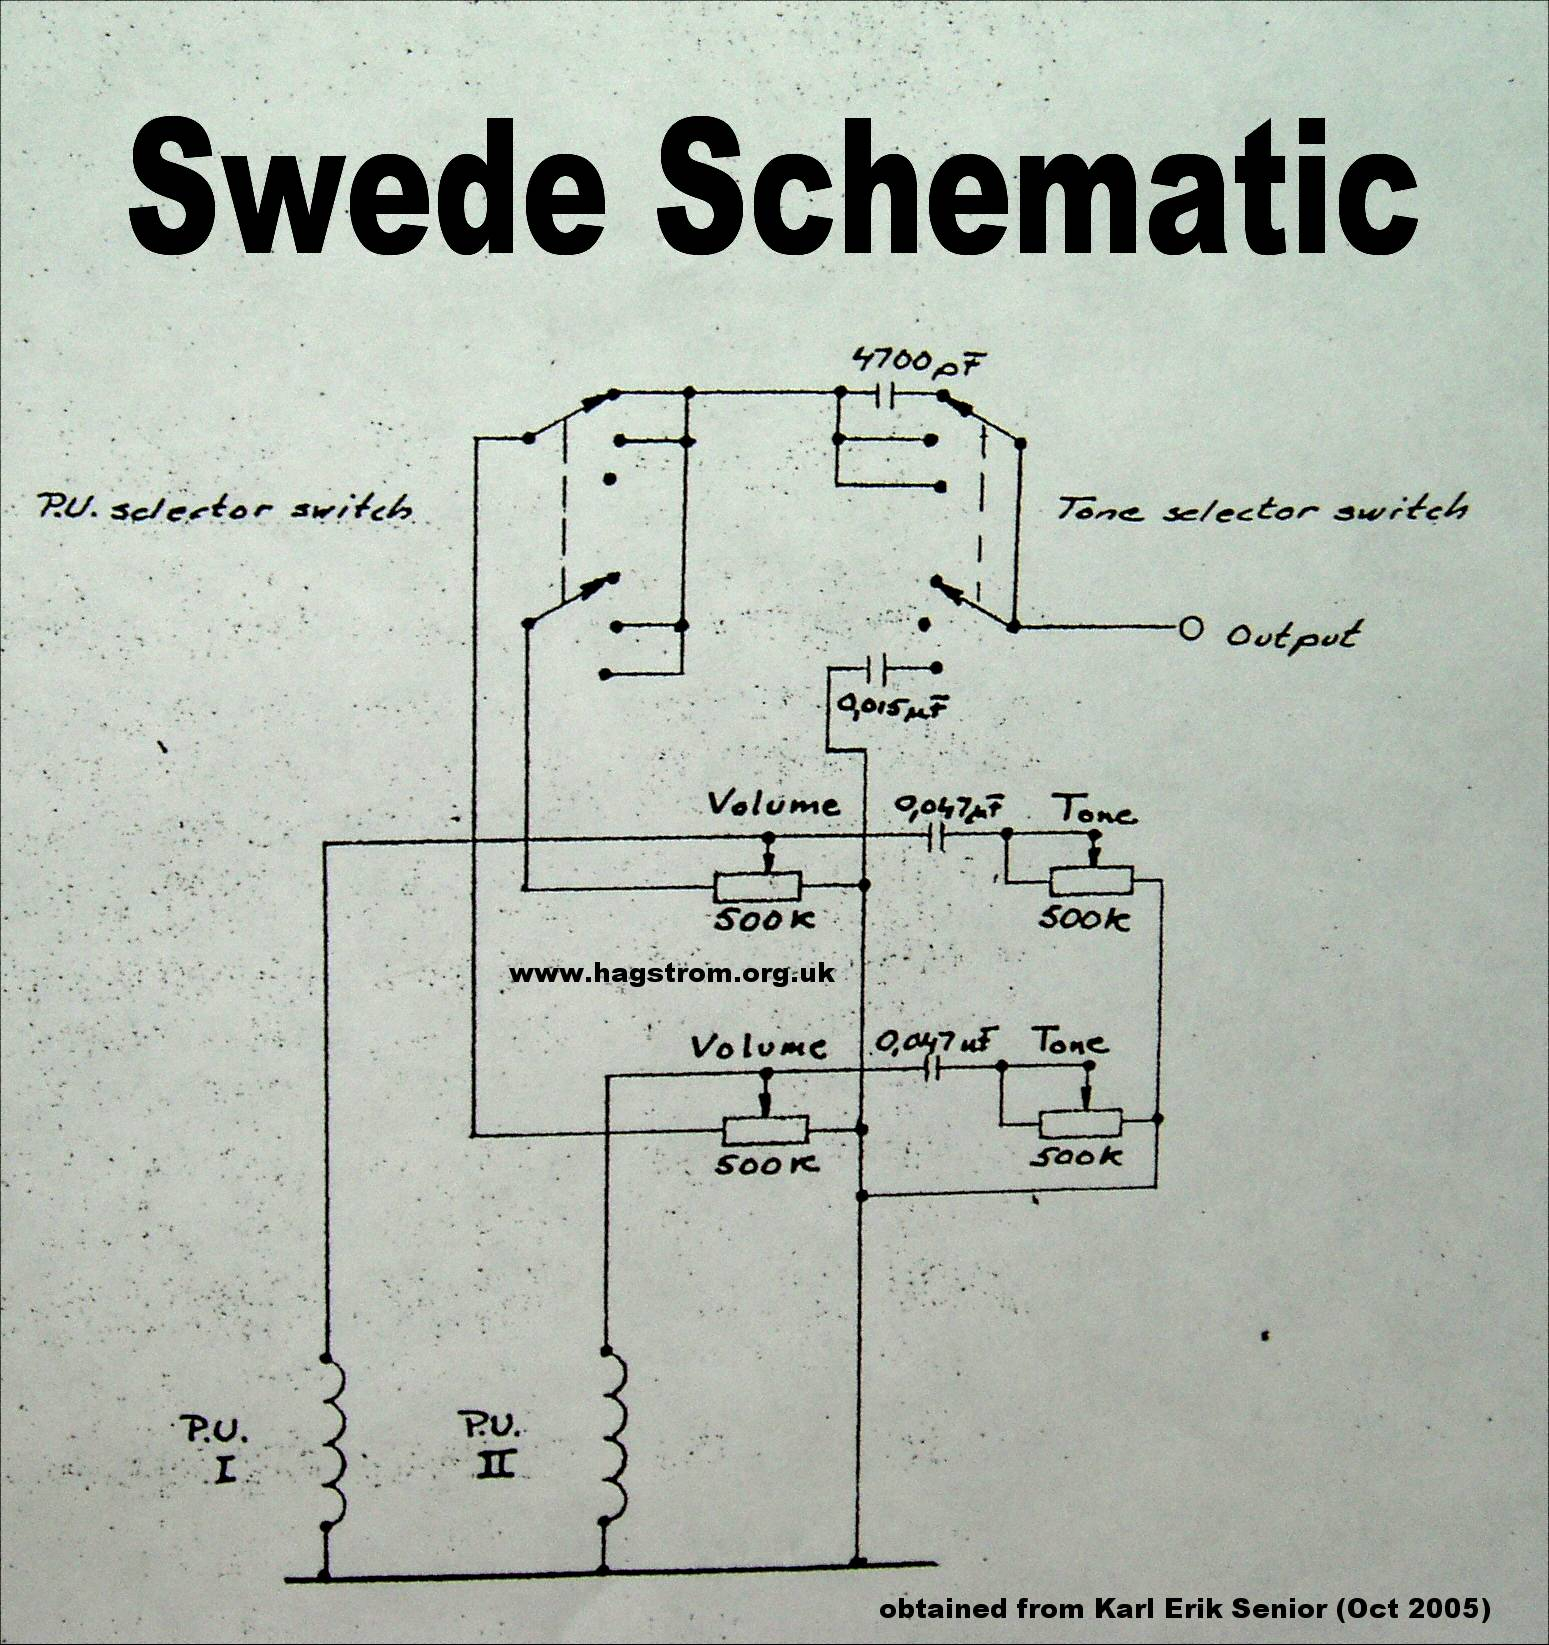 Hagström Schematics on